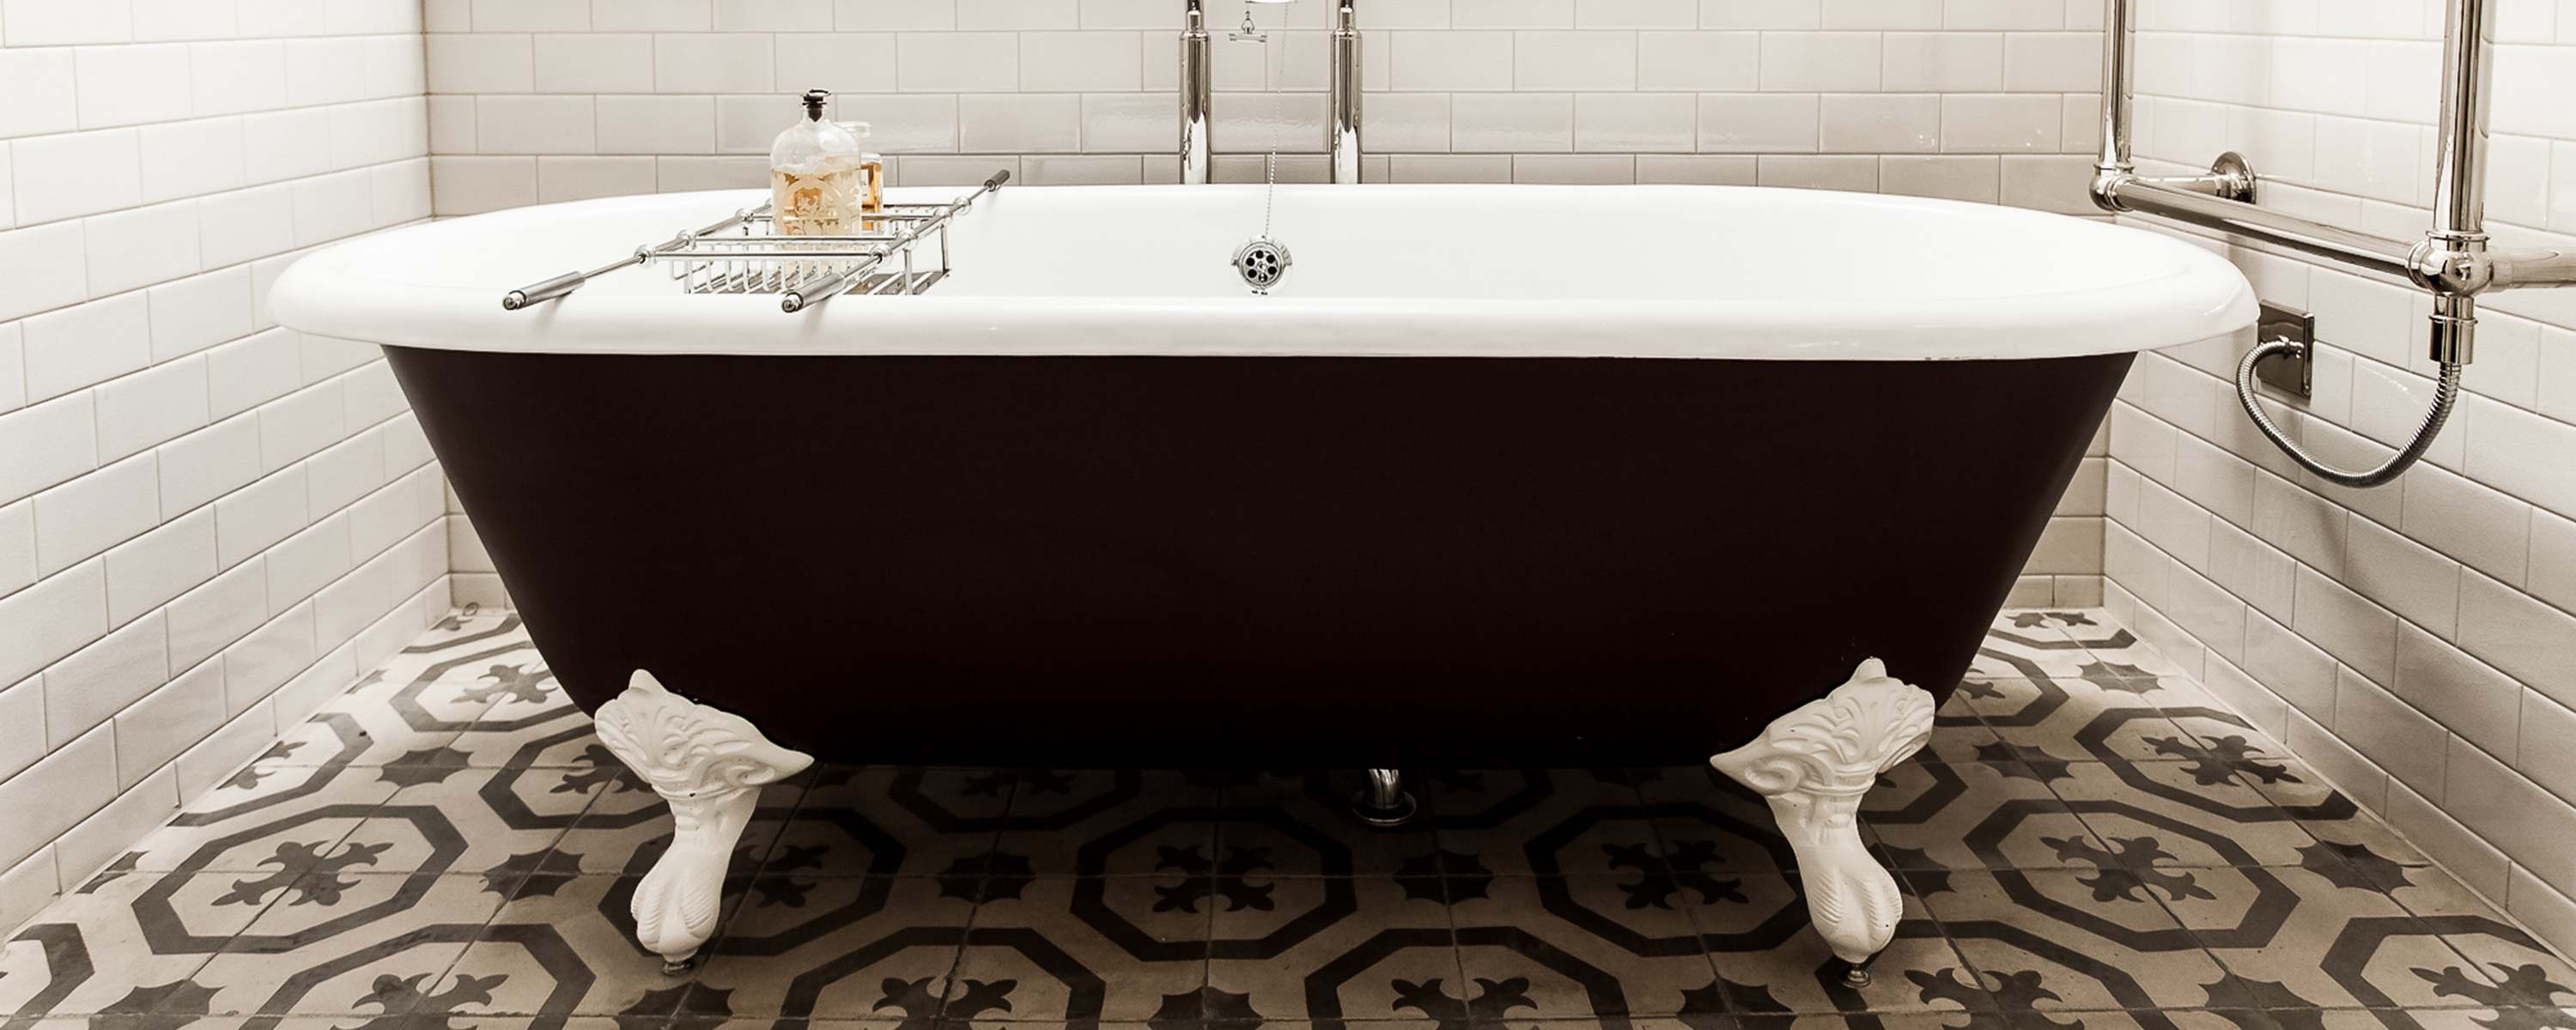 dreamy bathroom with free standing bath on feet, tiled flooring and walls